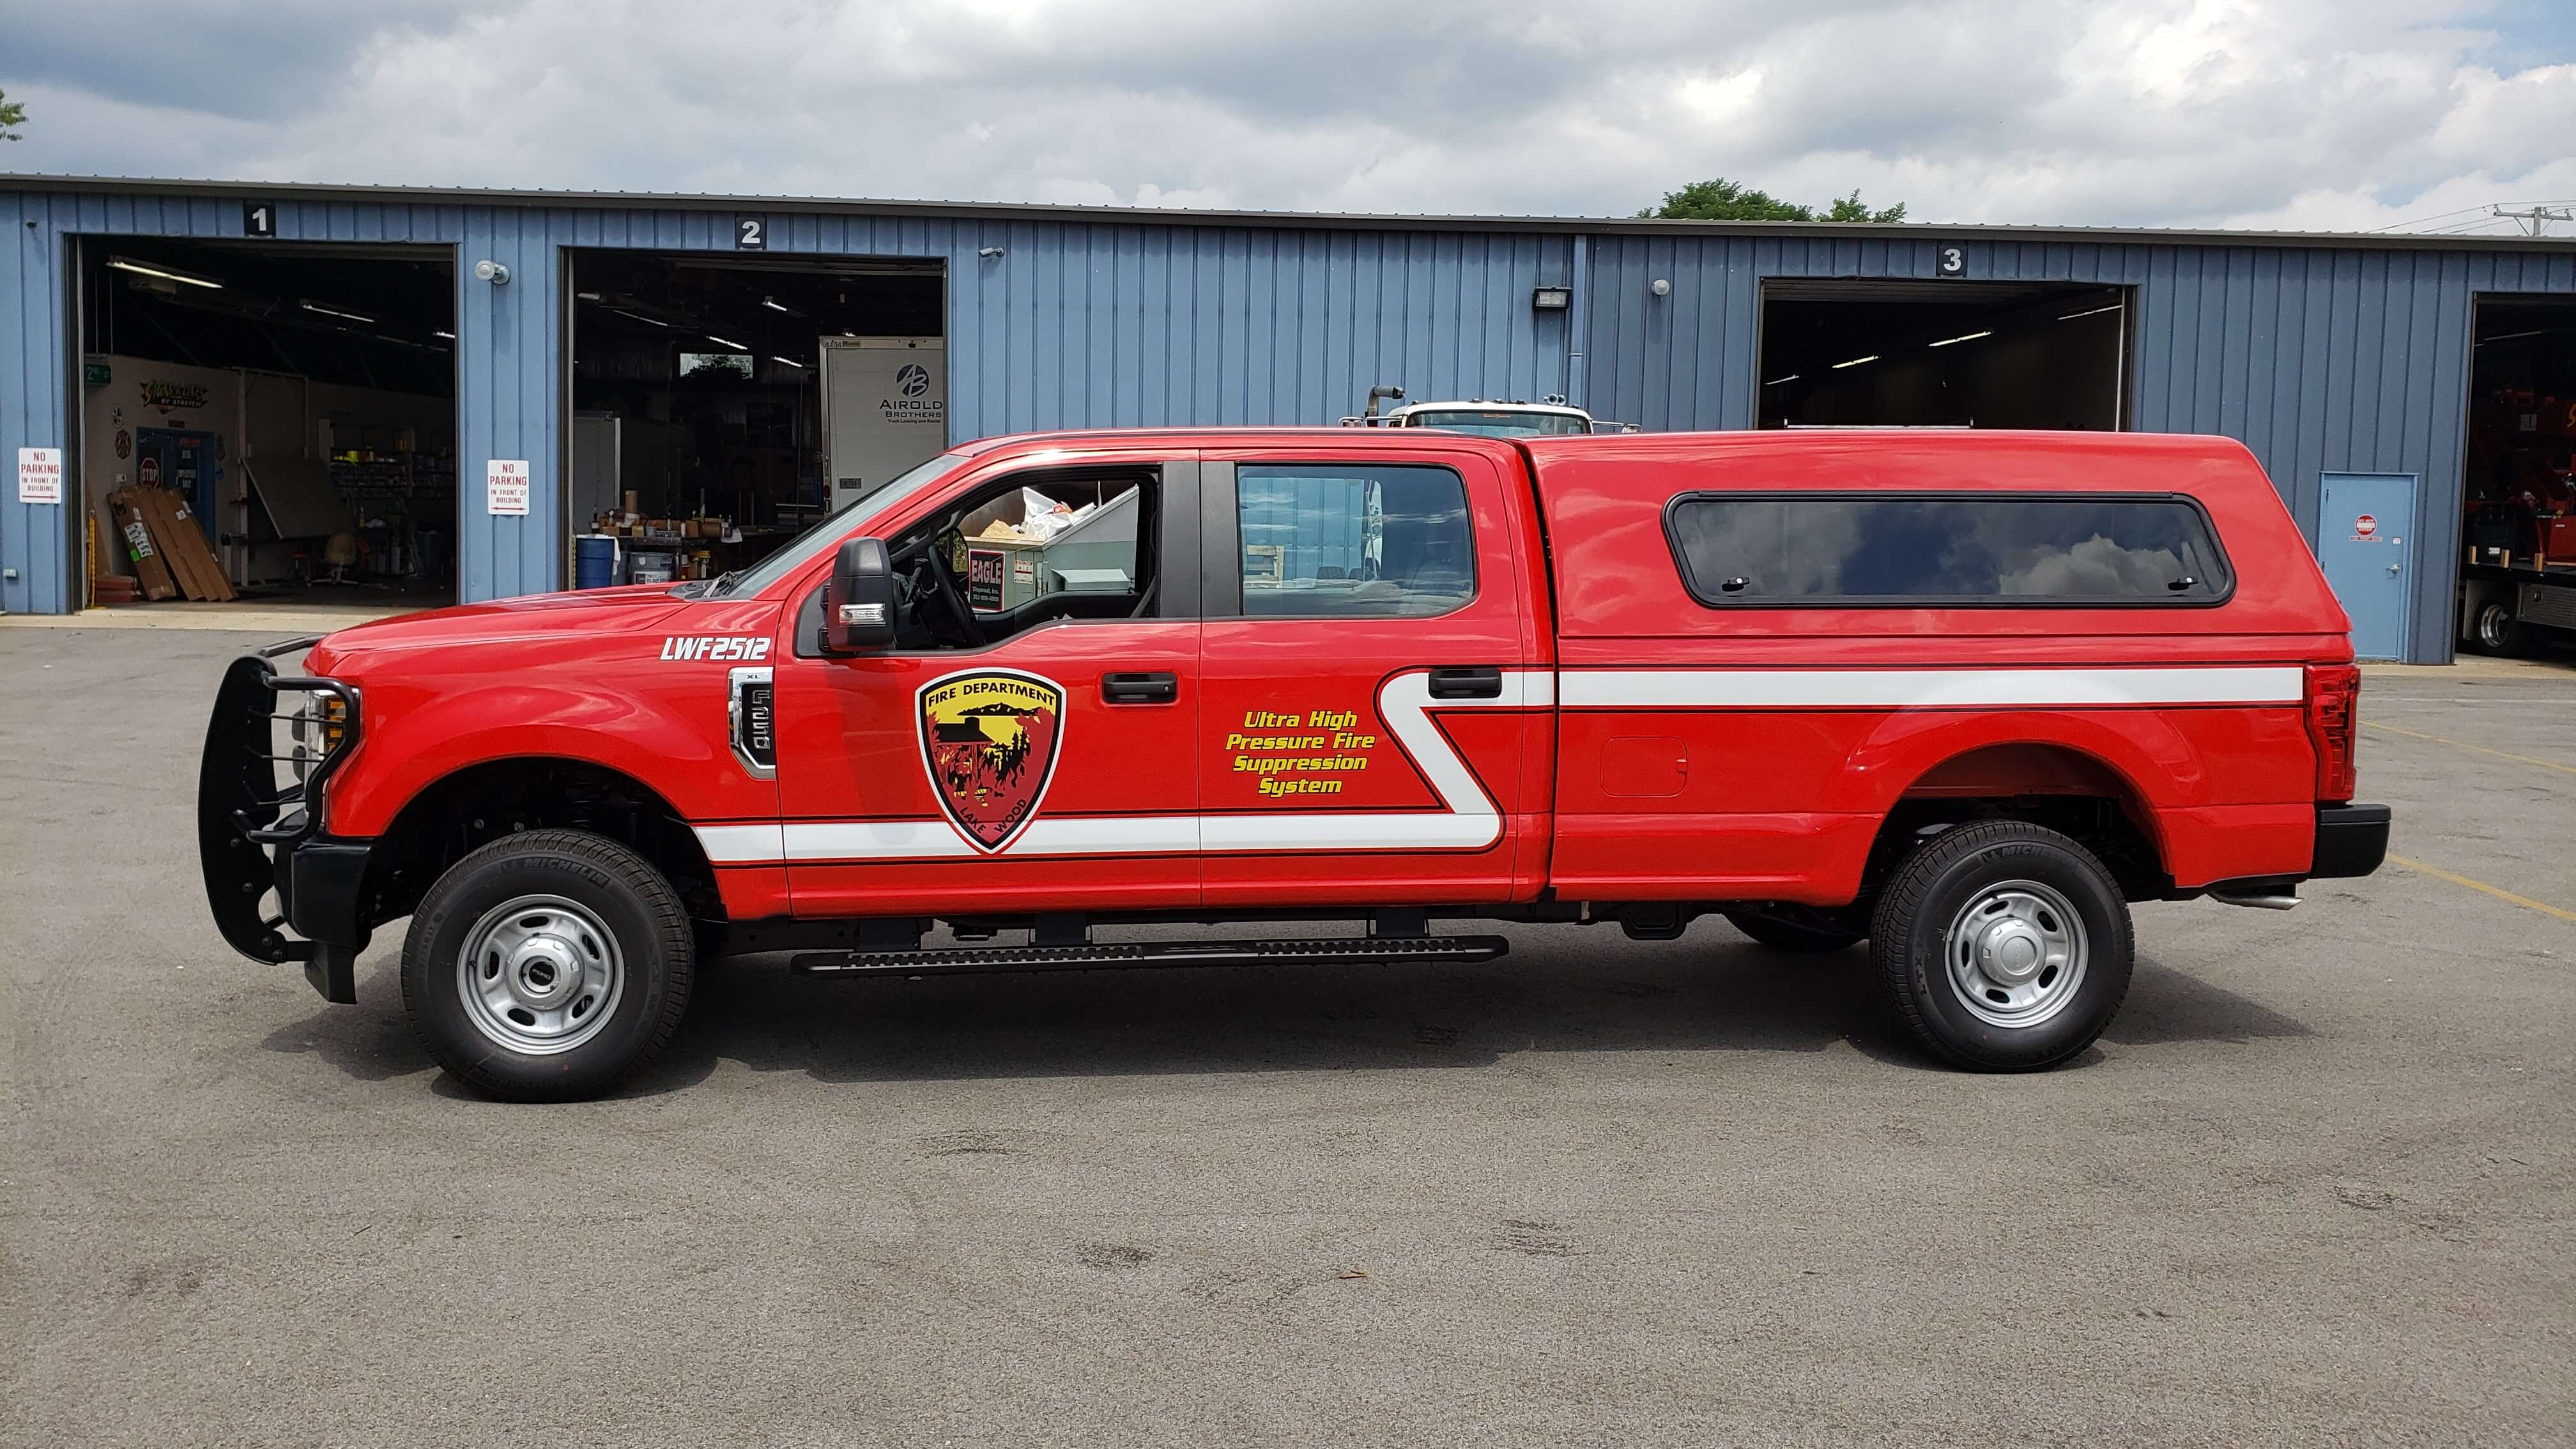 Lakewood Fire Department gold decals and chevrons